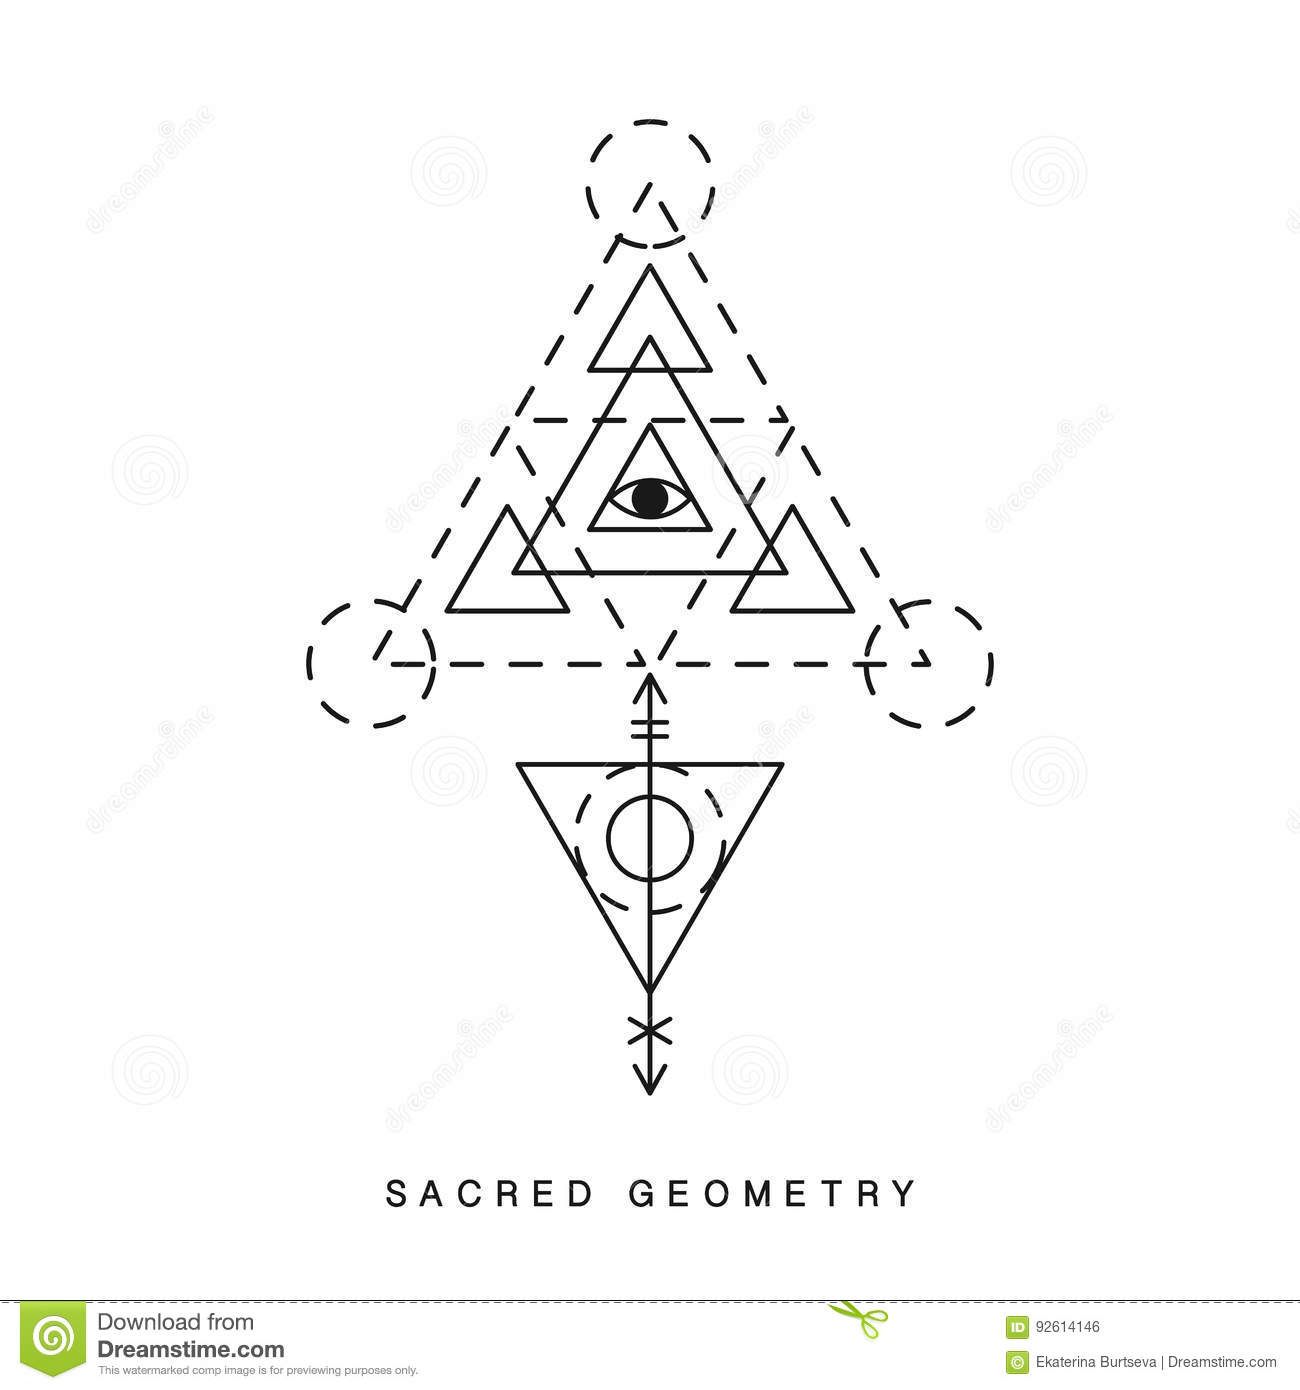 Alchemical Diagram Tattoos Schematic Wiring Ford Taurus Fuse Box Tattoo Sacred Geometry Sign Stock Vector Illustration Of Rh Dreamstime Com Sun Etching Symbol